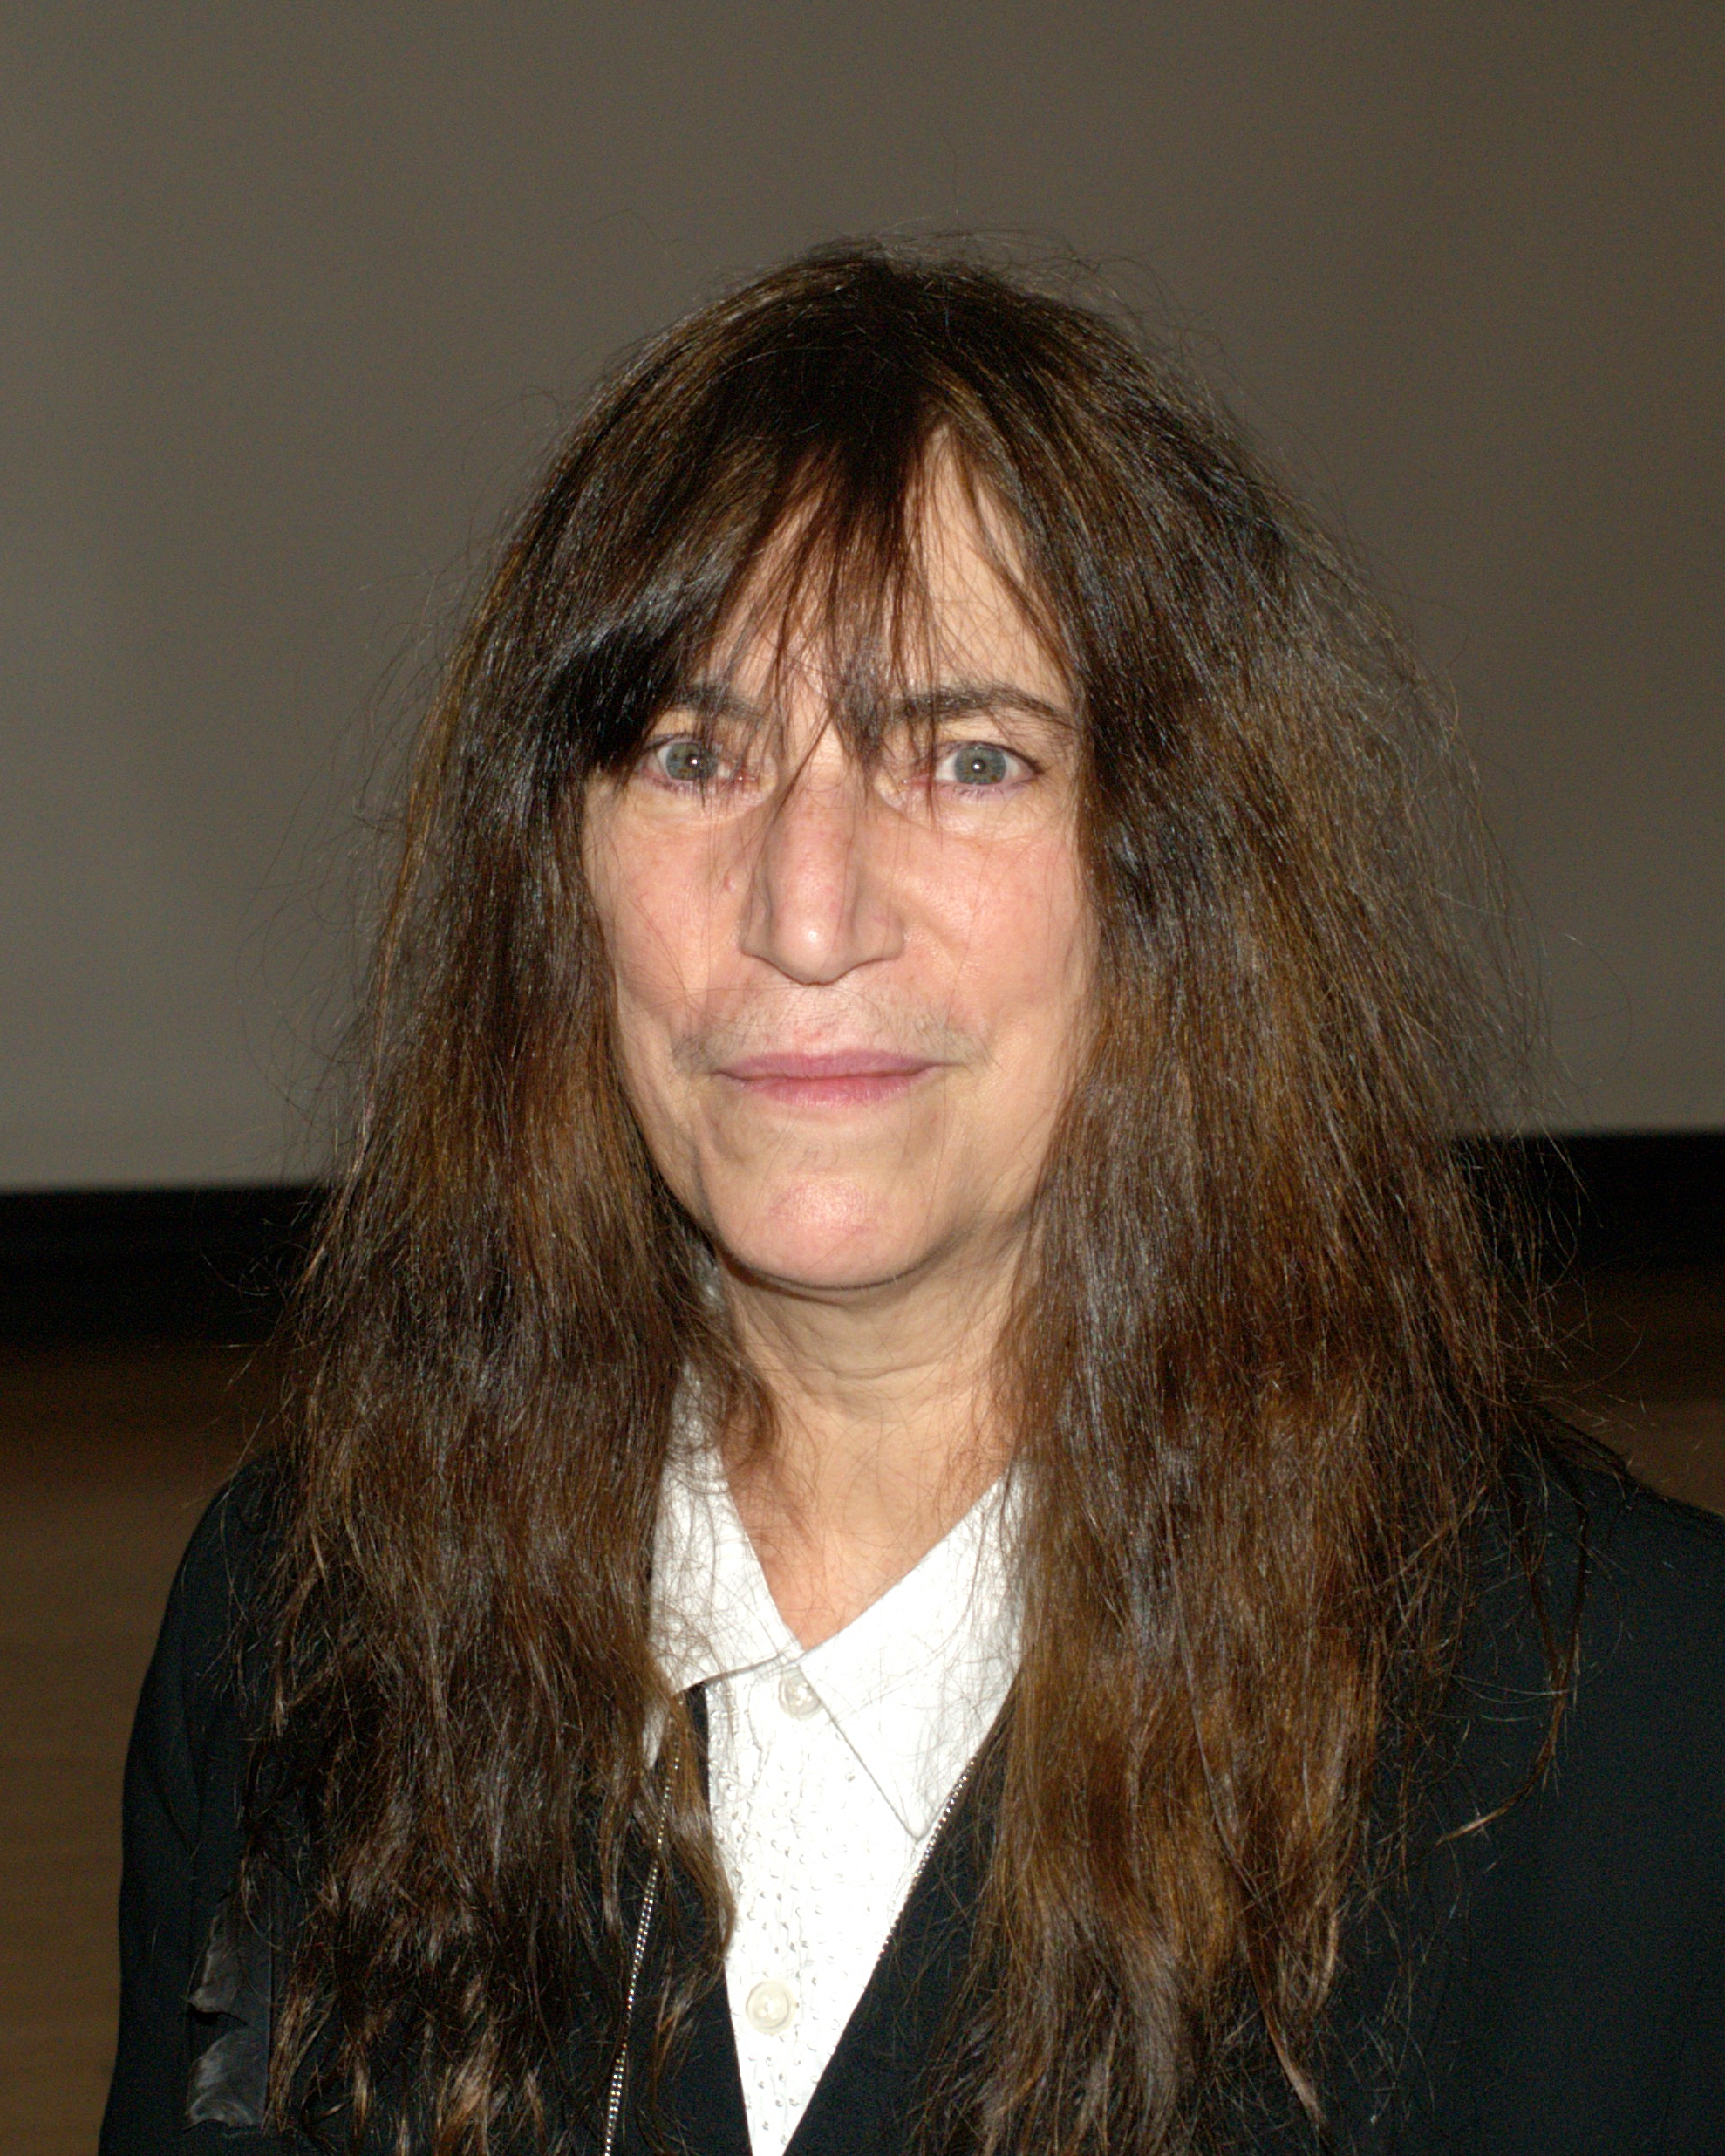 Image of Patti Smith from Wikidata